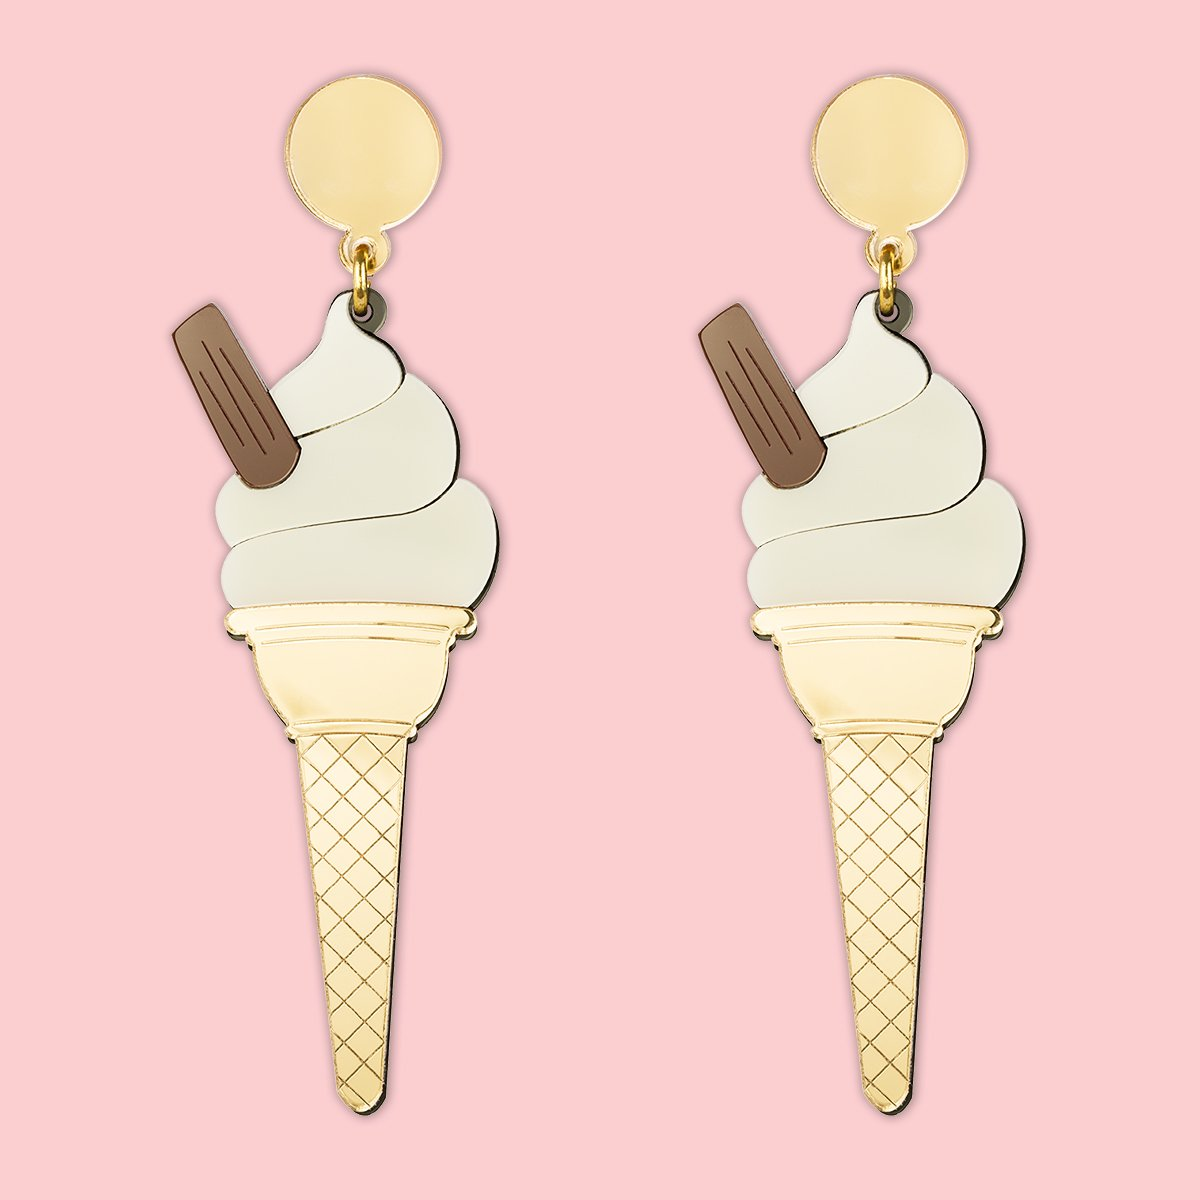 Lou Taylor Mr Whippy Ice Cream Earrings